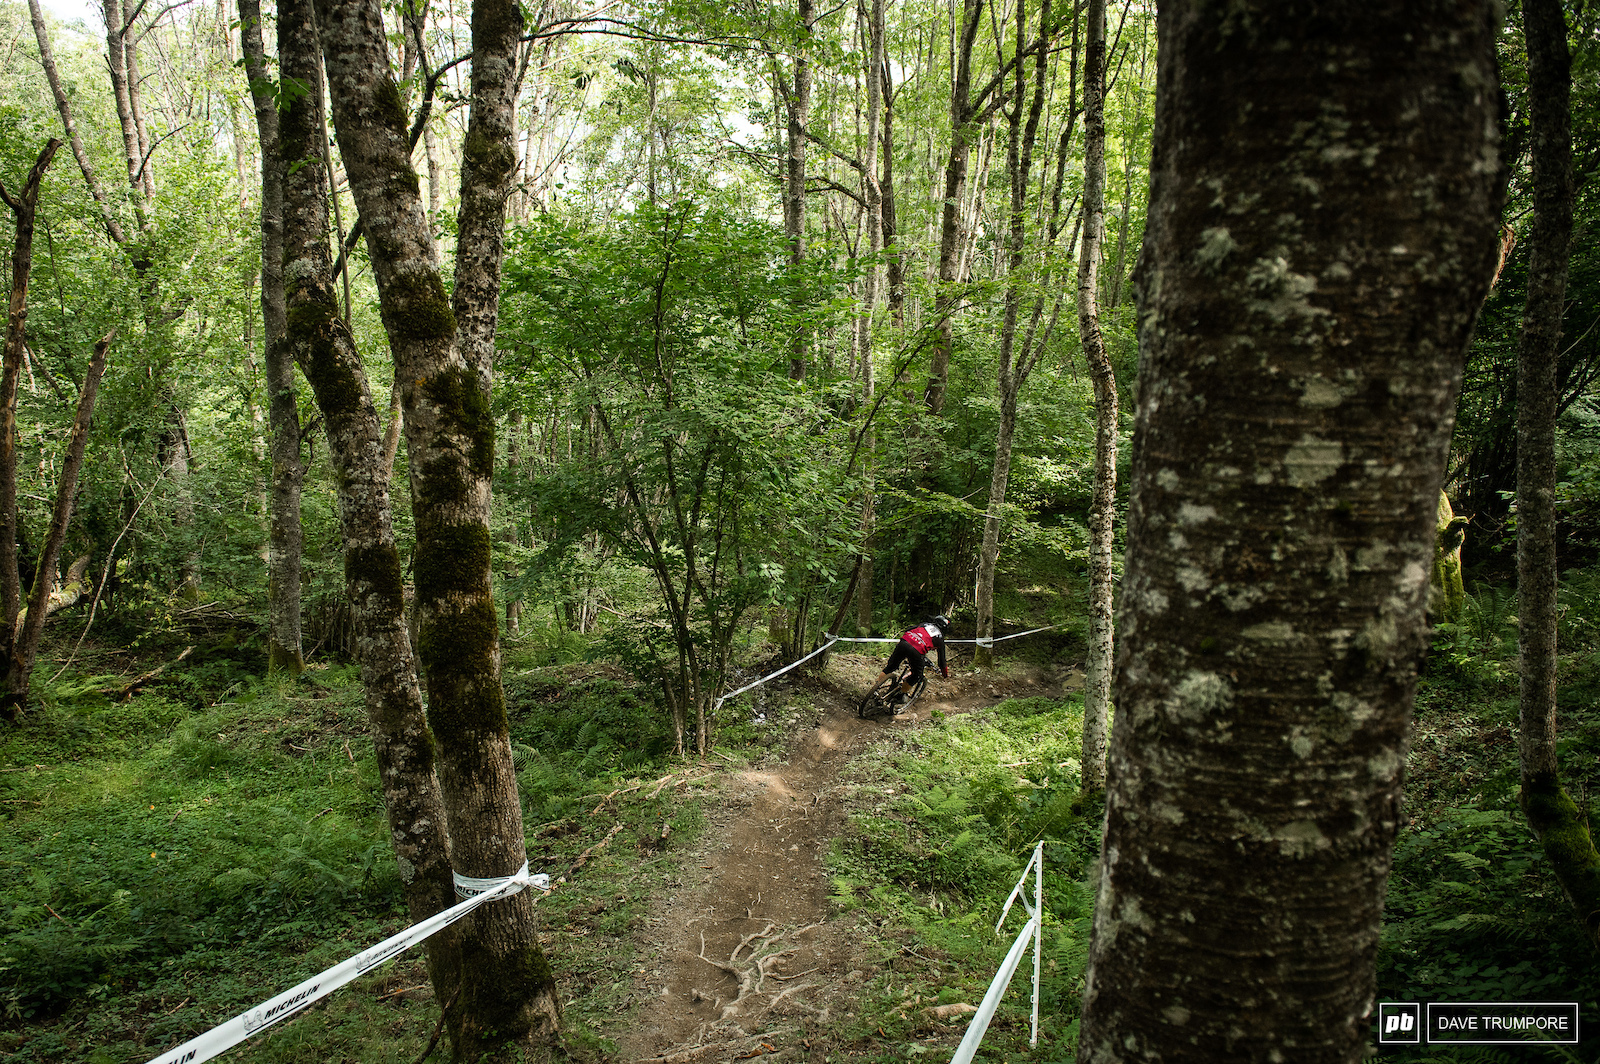 Stage 6 took a break from the high alpine environment and made it s way through a technical forest